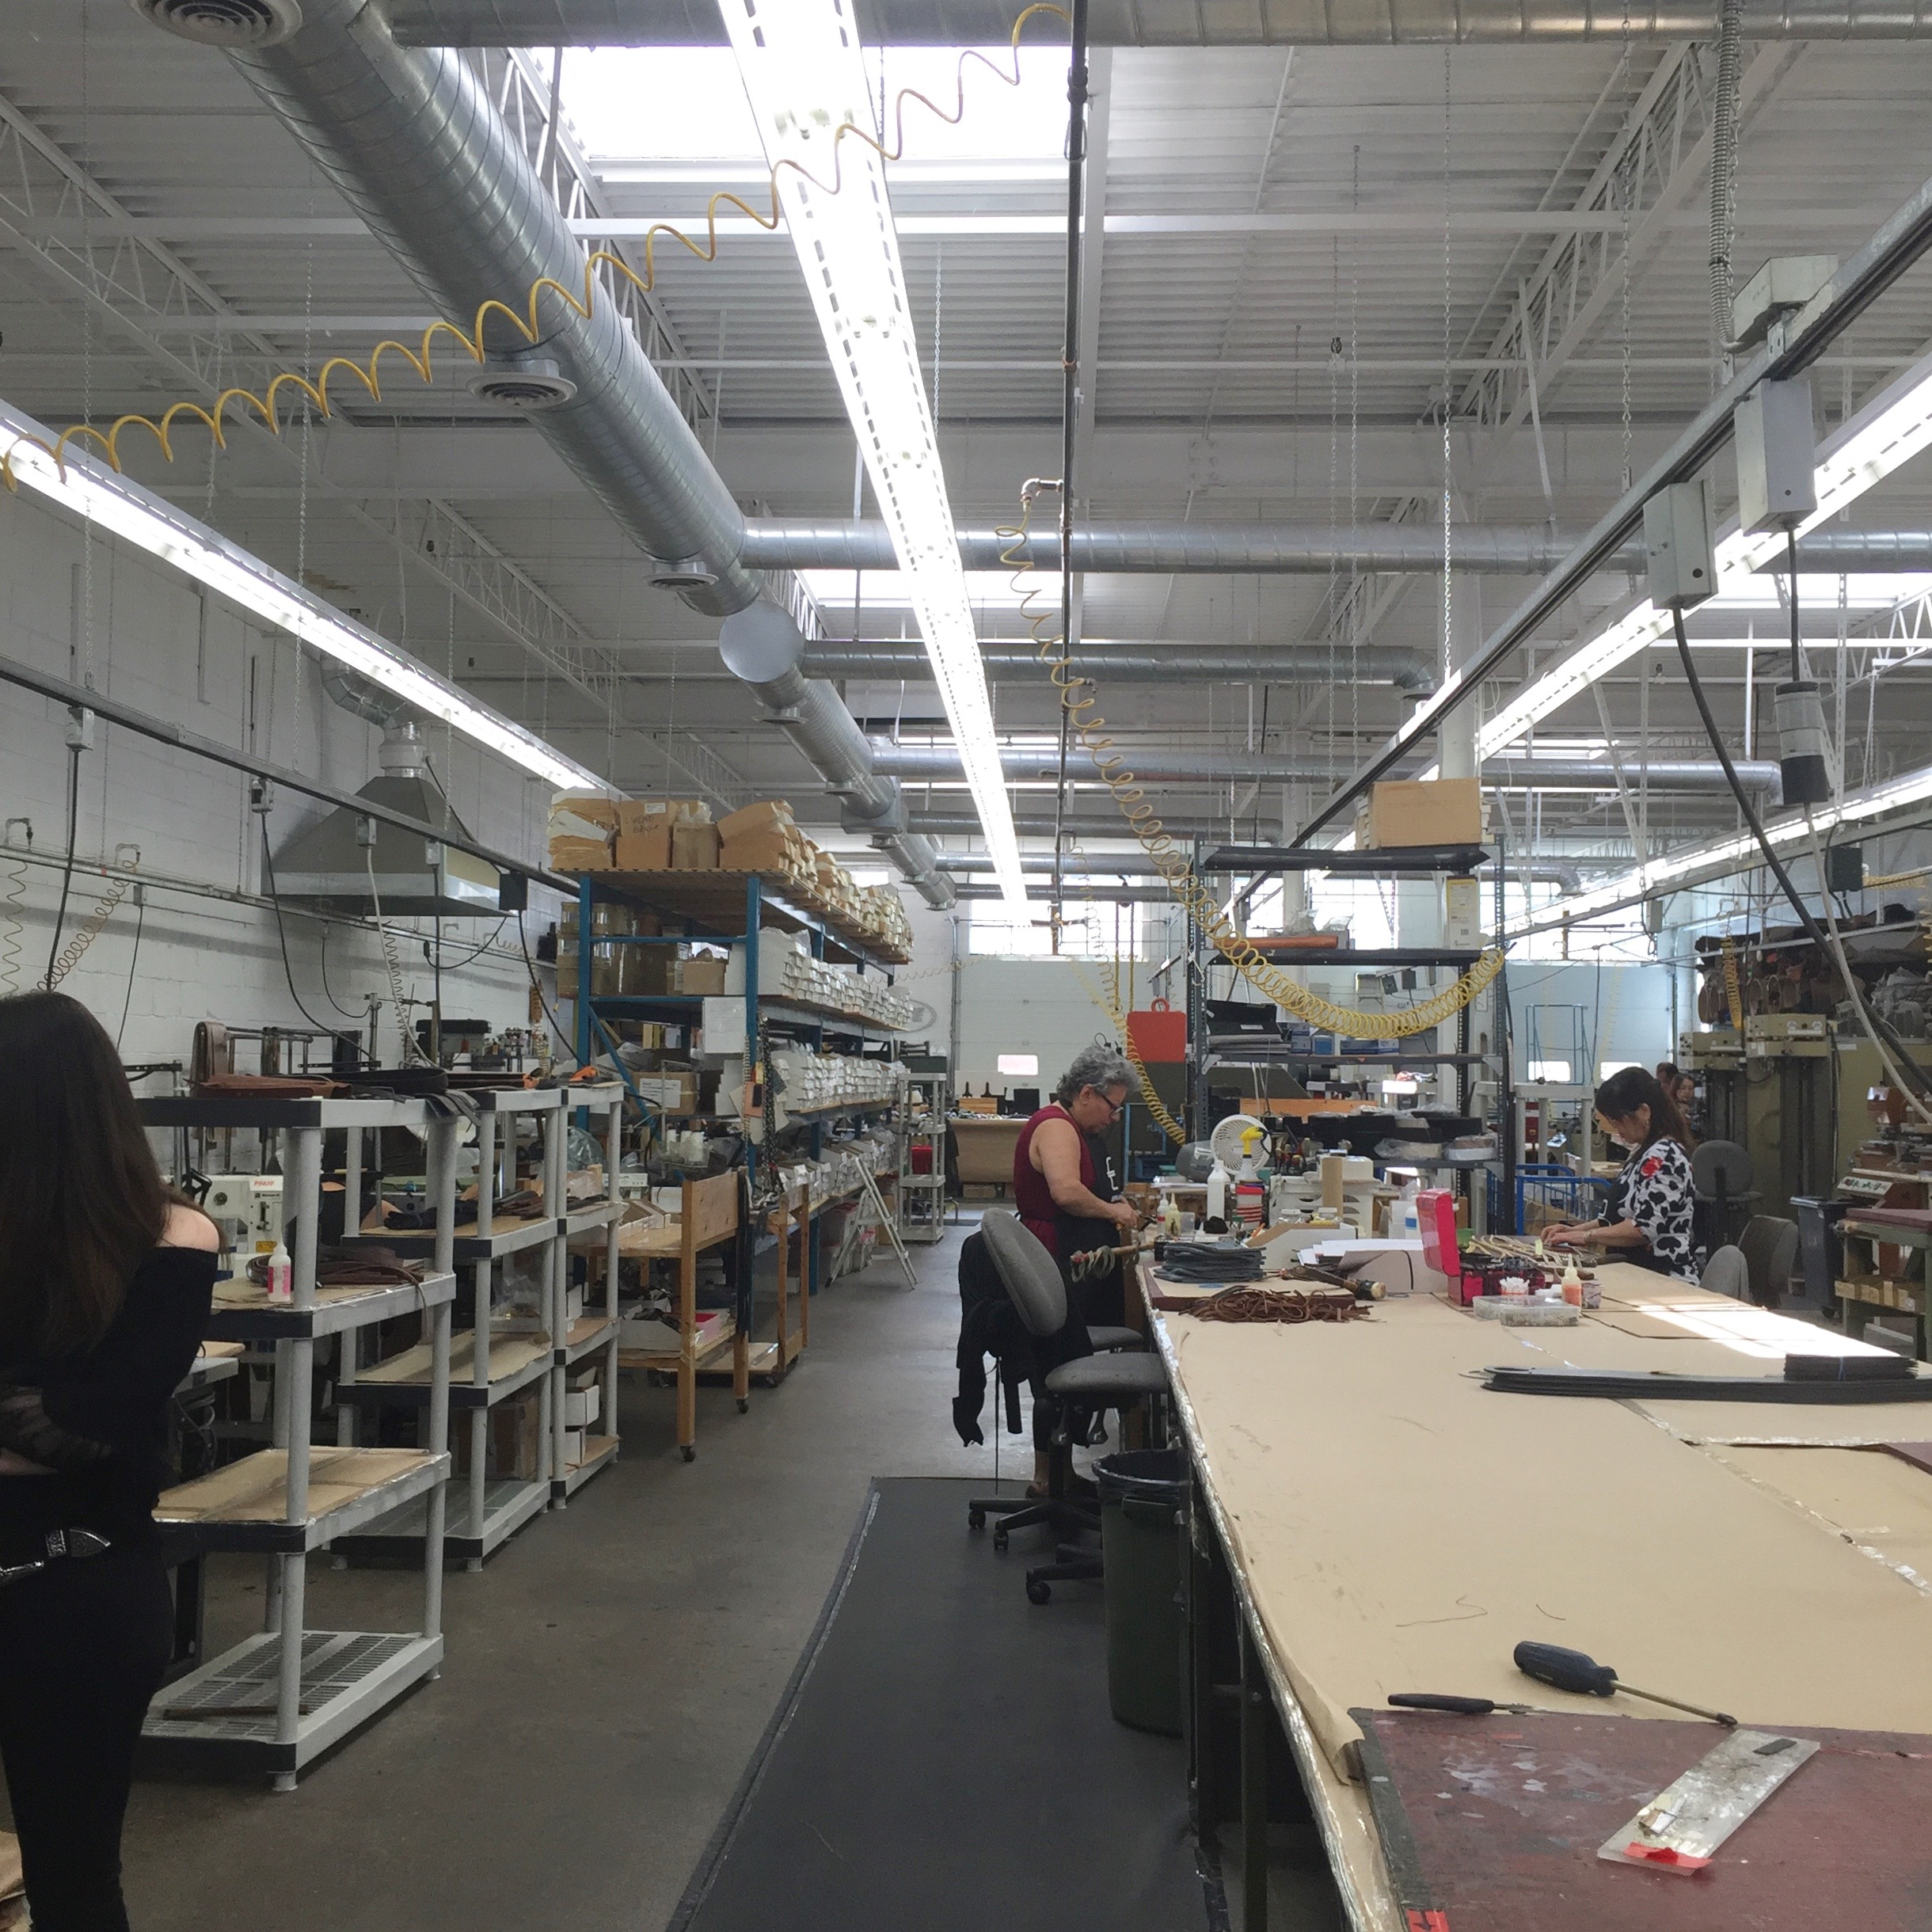 here's one side of the factory.